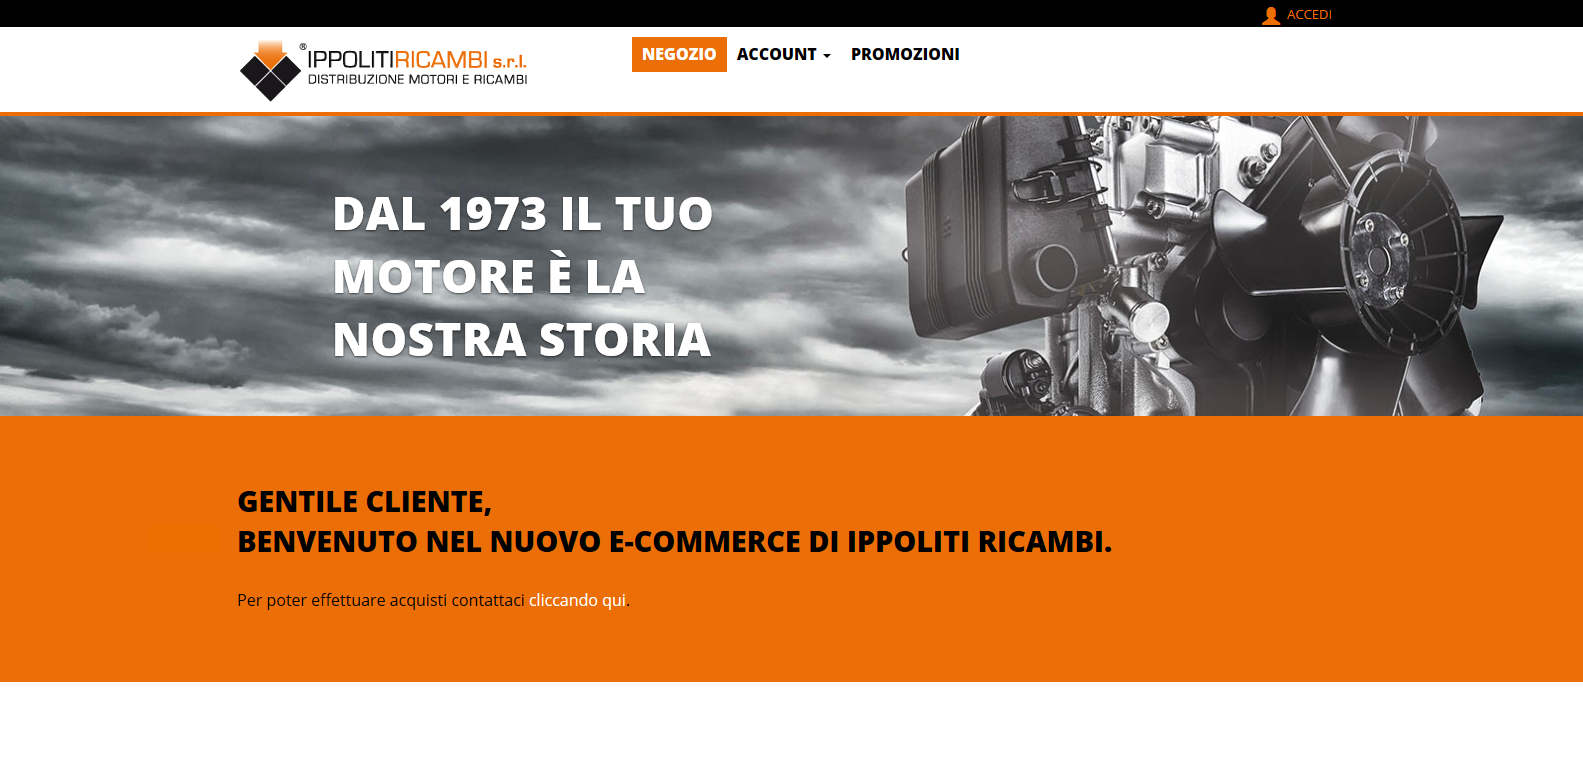 Ippoliti ricambi E-commerce